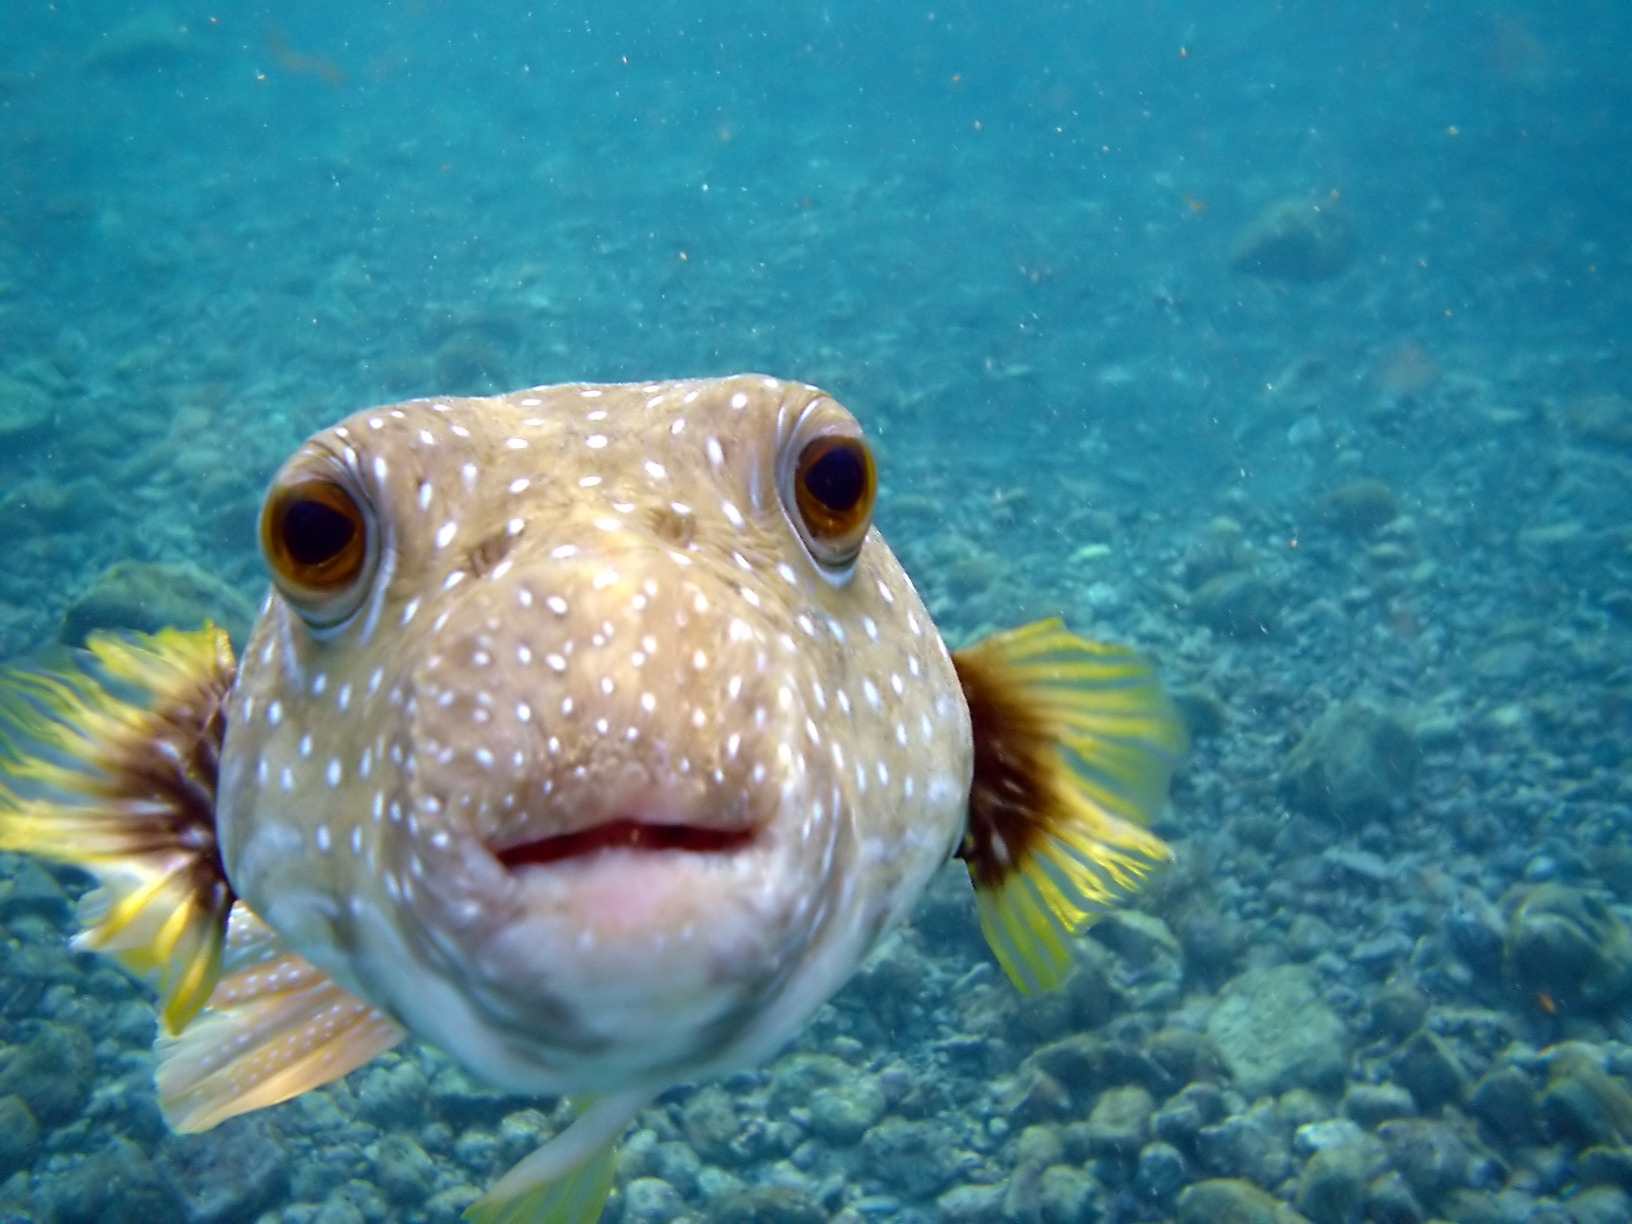 114316 download wallpaper Animals, Small Fish, Fishy, Water, Ocean, Sea screensavers and pictures for free